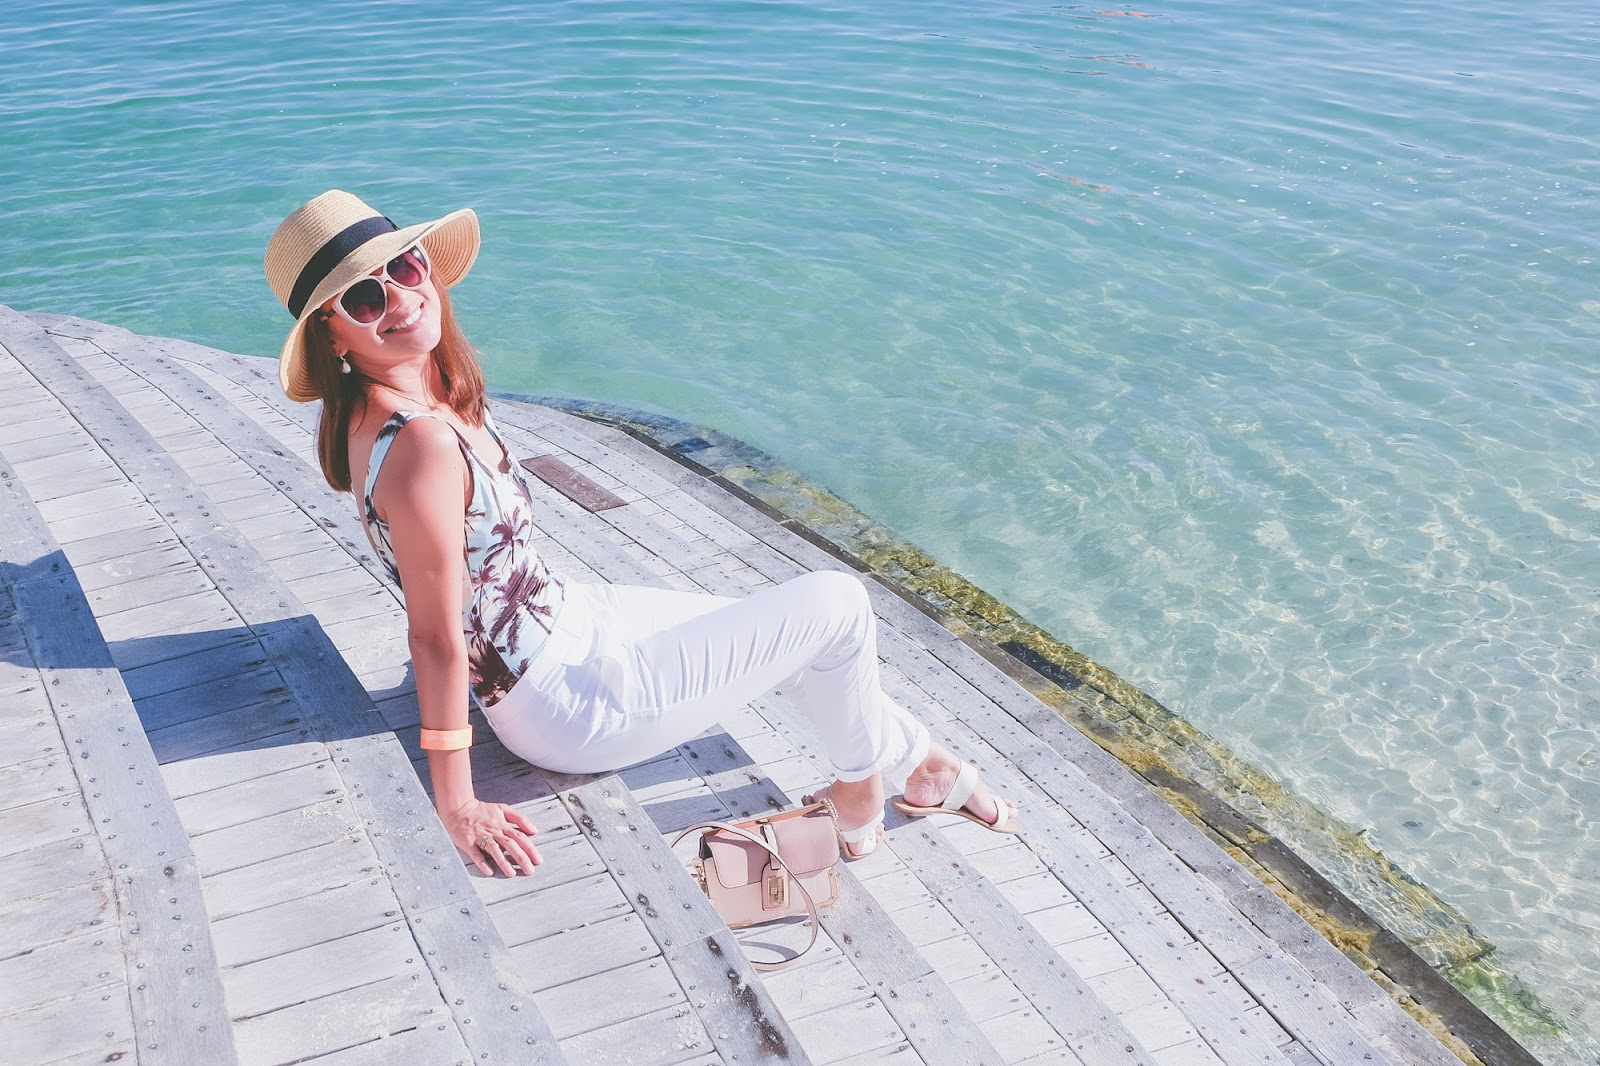 Cebu Fashion Blogger, Cebu Blogger, Cebu Lifestyle Blogger, HM x Movenpick Cebu, One-piece swimwear, maillot, Philippine Blogger, Beach outfit, beachside hangs, beach party outfit, Cebu resorts, Toni Pino-Oca, Cebu stylist